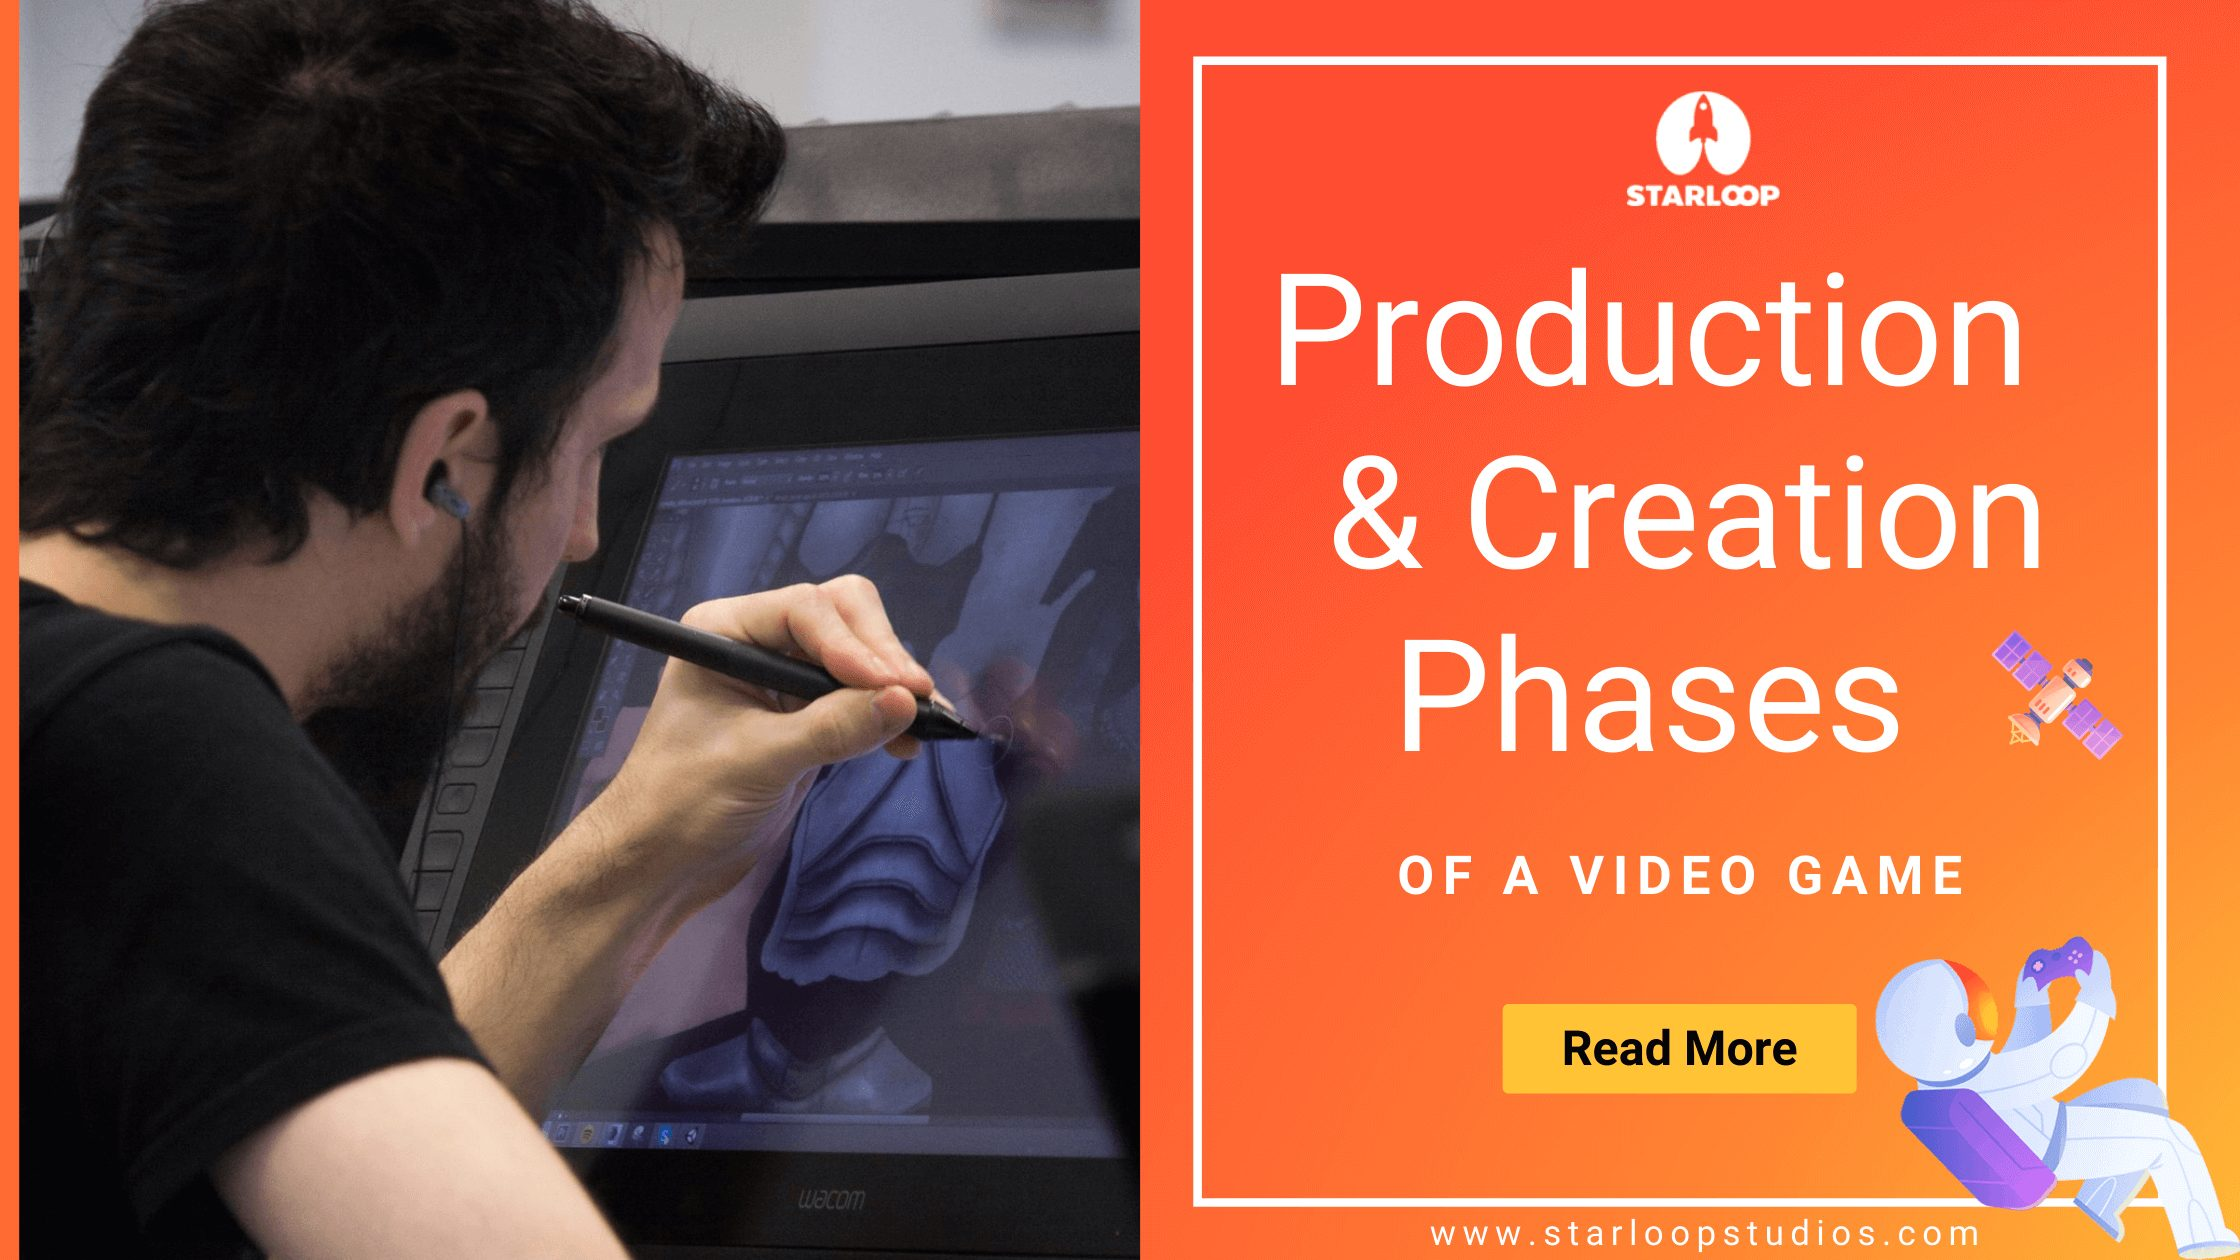 Production & creation phases of a video game